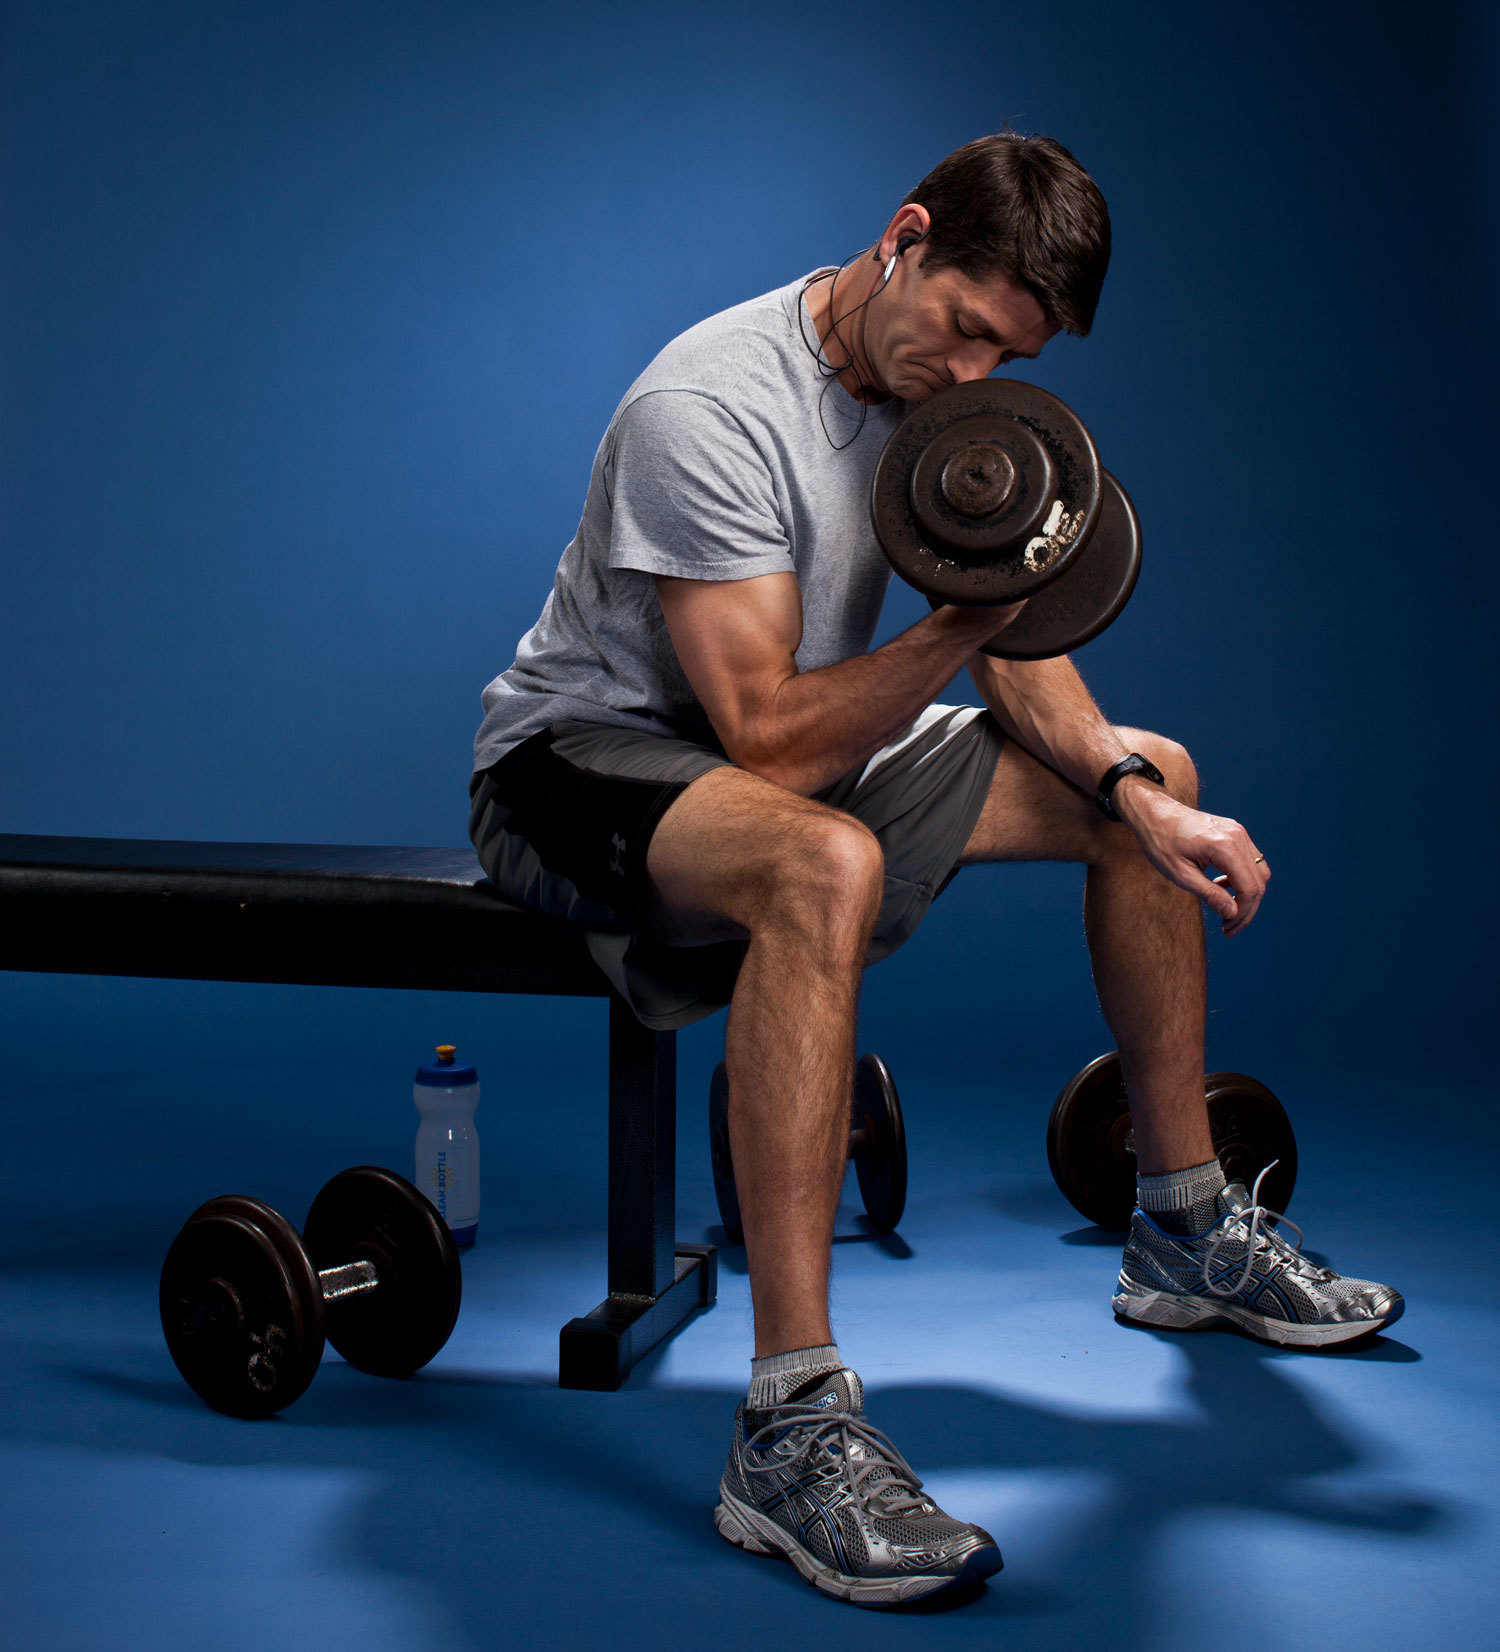 Workout Photography: Throwback Thursday, #WeightGate Edition: Were Paul Ryan's